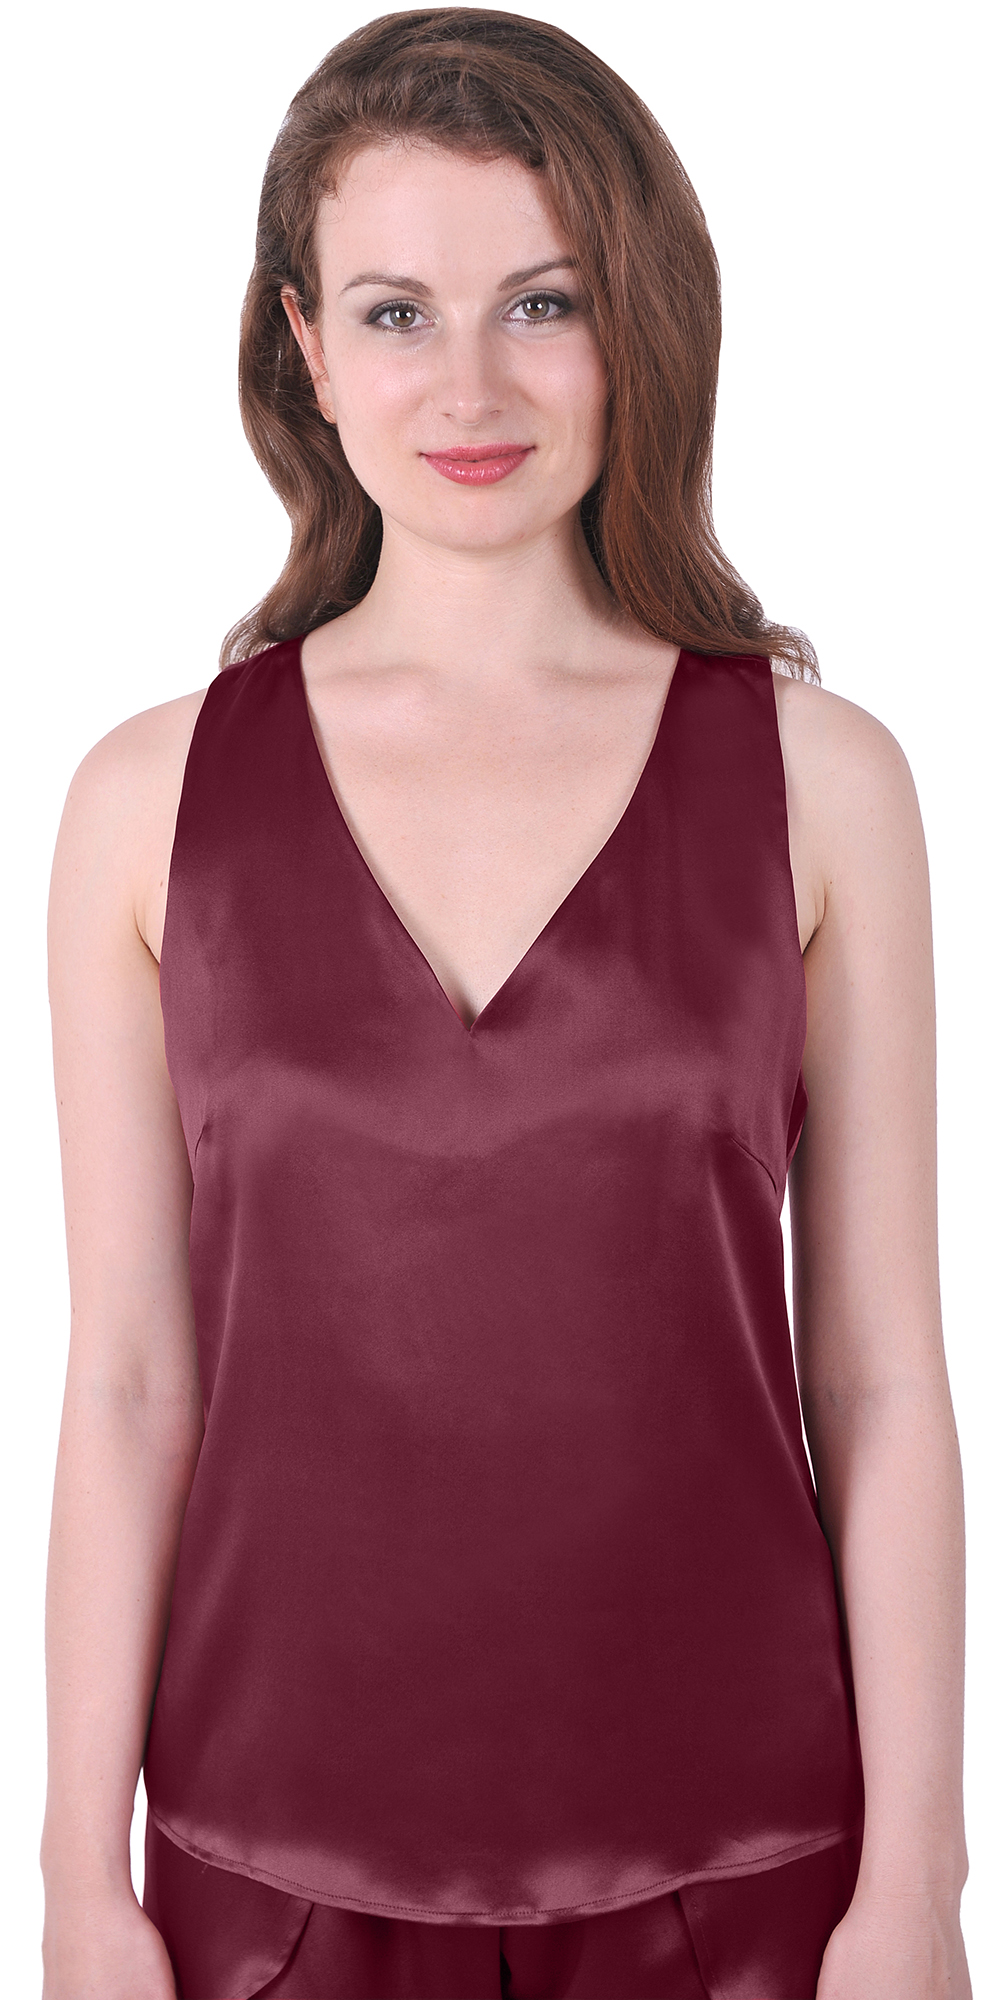 Discover the range of silk, lace, satin camisoles & vests available at ASOS. Choose from our collection of sleeveless camisoles & vests in a variety of colours.